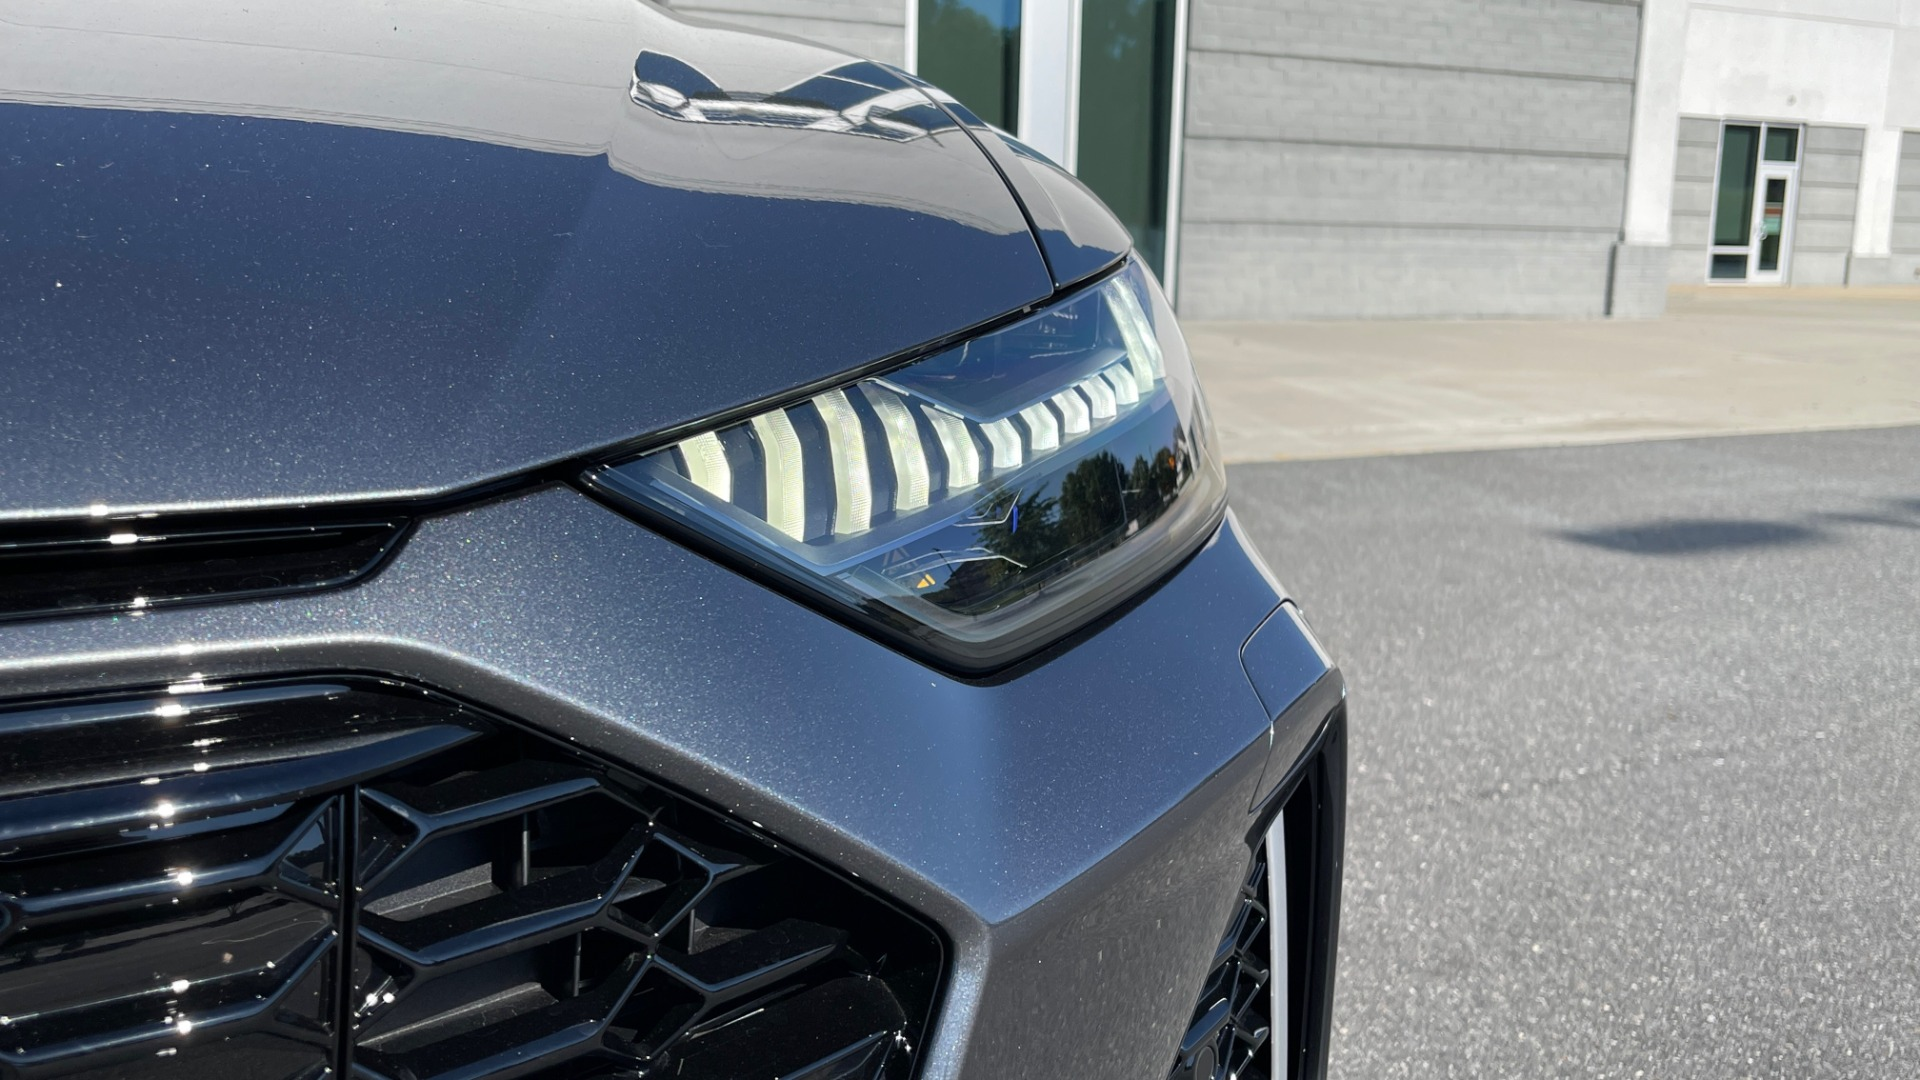 Used 2021 Audi RS 6 AVANT WAGON / EXEC PKG / CARBON OPTIC / B&O SND / DRVR ASST / SPRT EXH for sale Sold at Formula Imports in Charlotte NC 28227 13